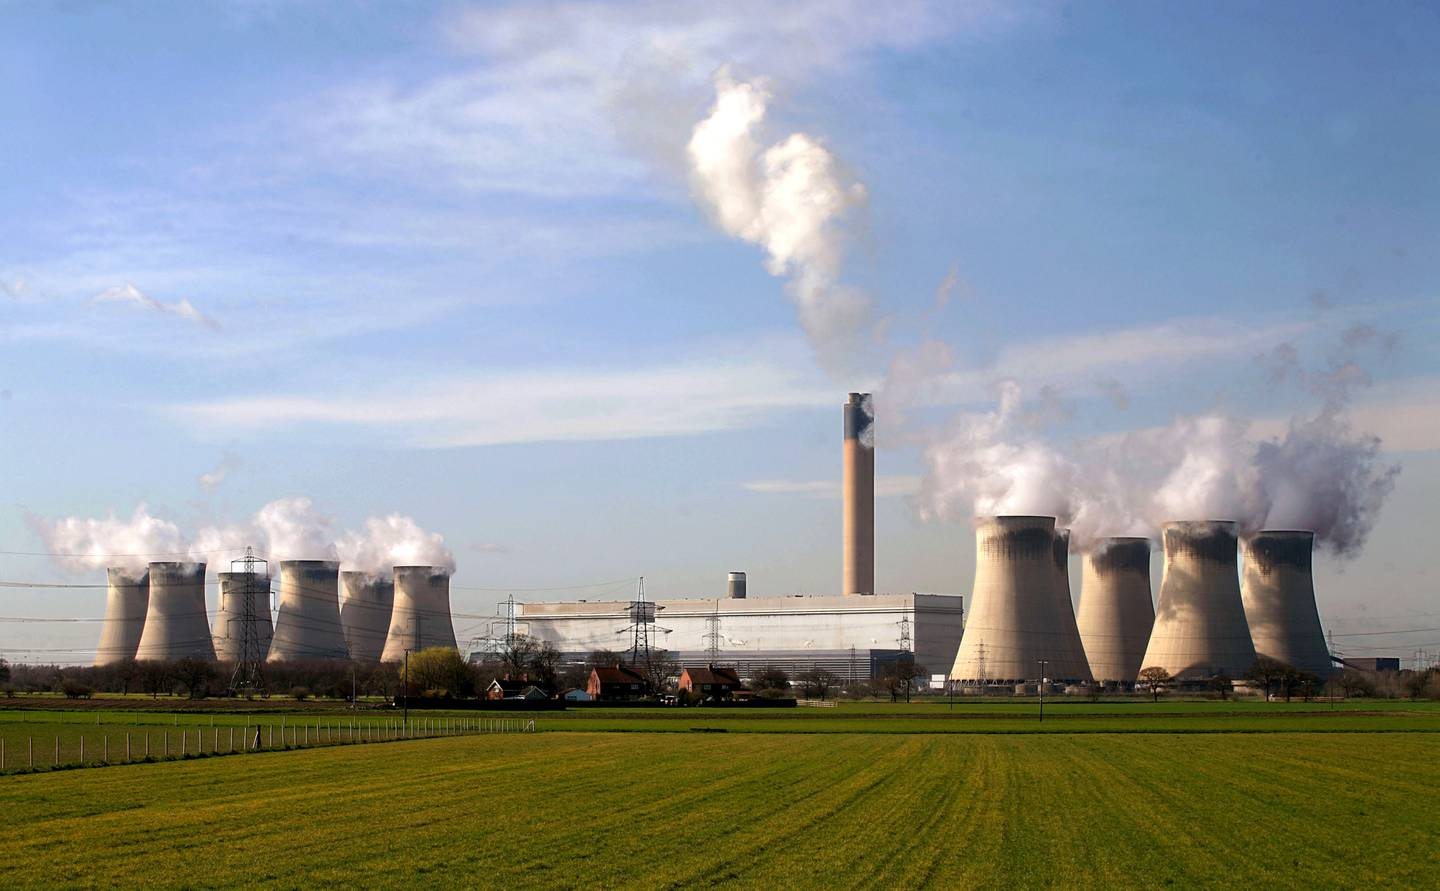 Cooling towers seen at the Drax Power station near Selby in north Yorkshire, U.K., Tuesday, March 13, 2007. Photographer: Graham Barclay/Bloomberg News